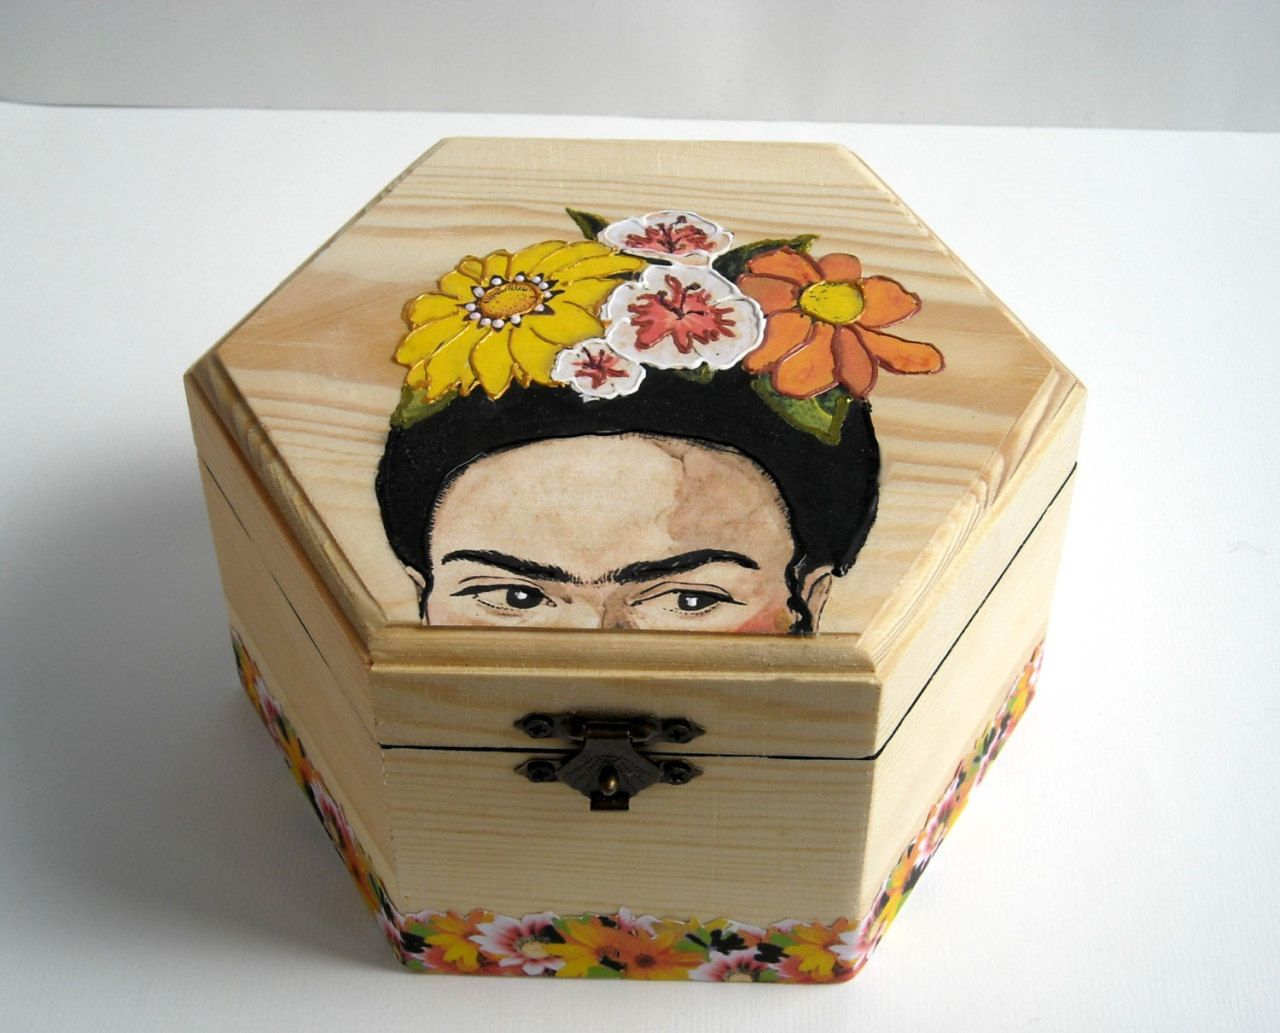 Hand Painted Jewelry Boxes By Bemimes On Etsy So Painted Jewelry Boxes Wooden Box Diy Wooden Jewelry Boxes